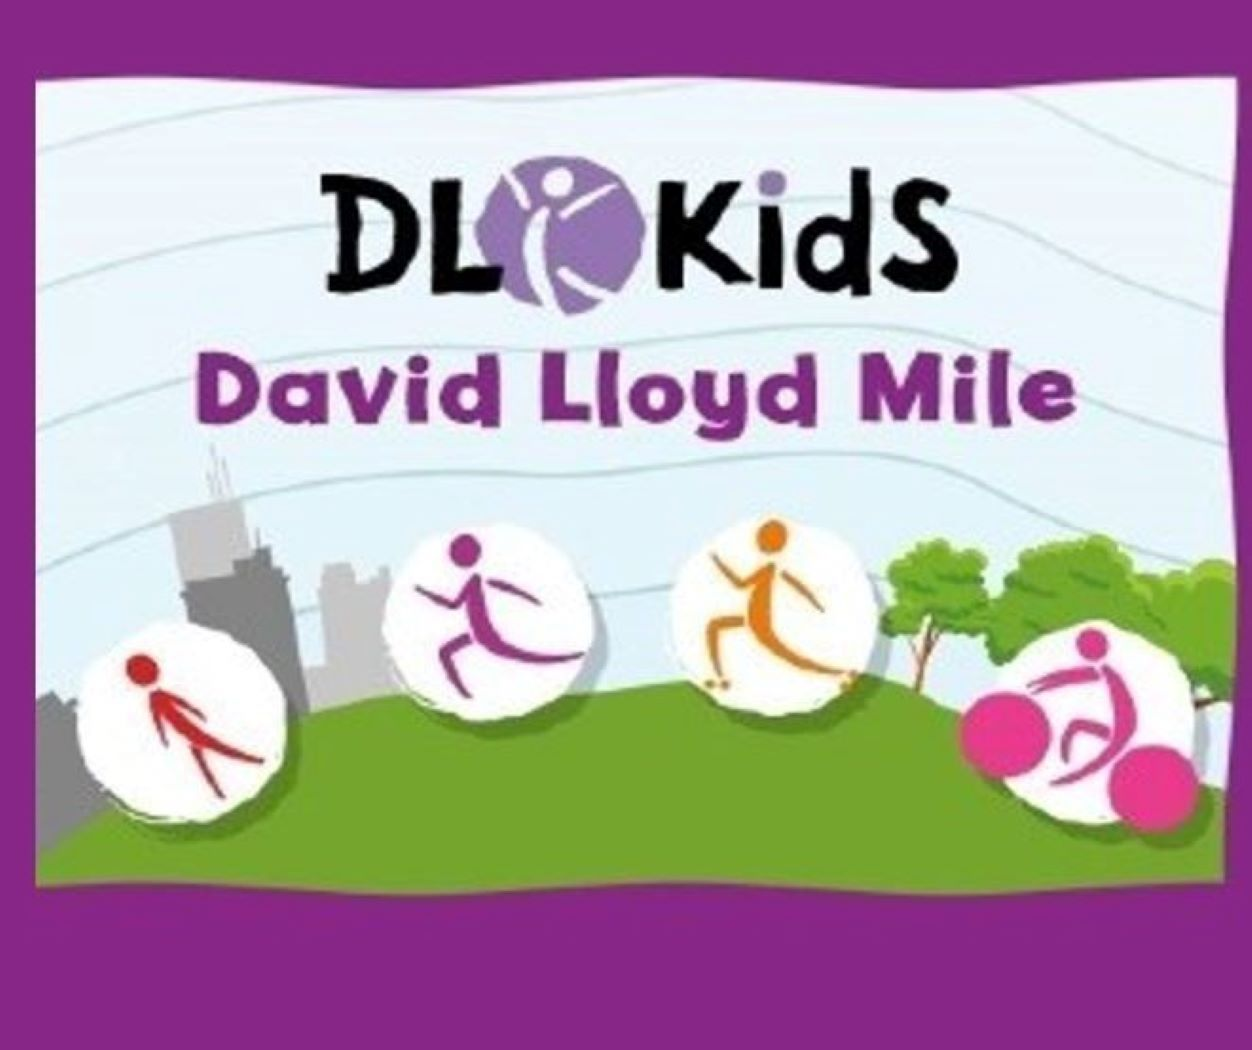 The David Lloyd Mile